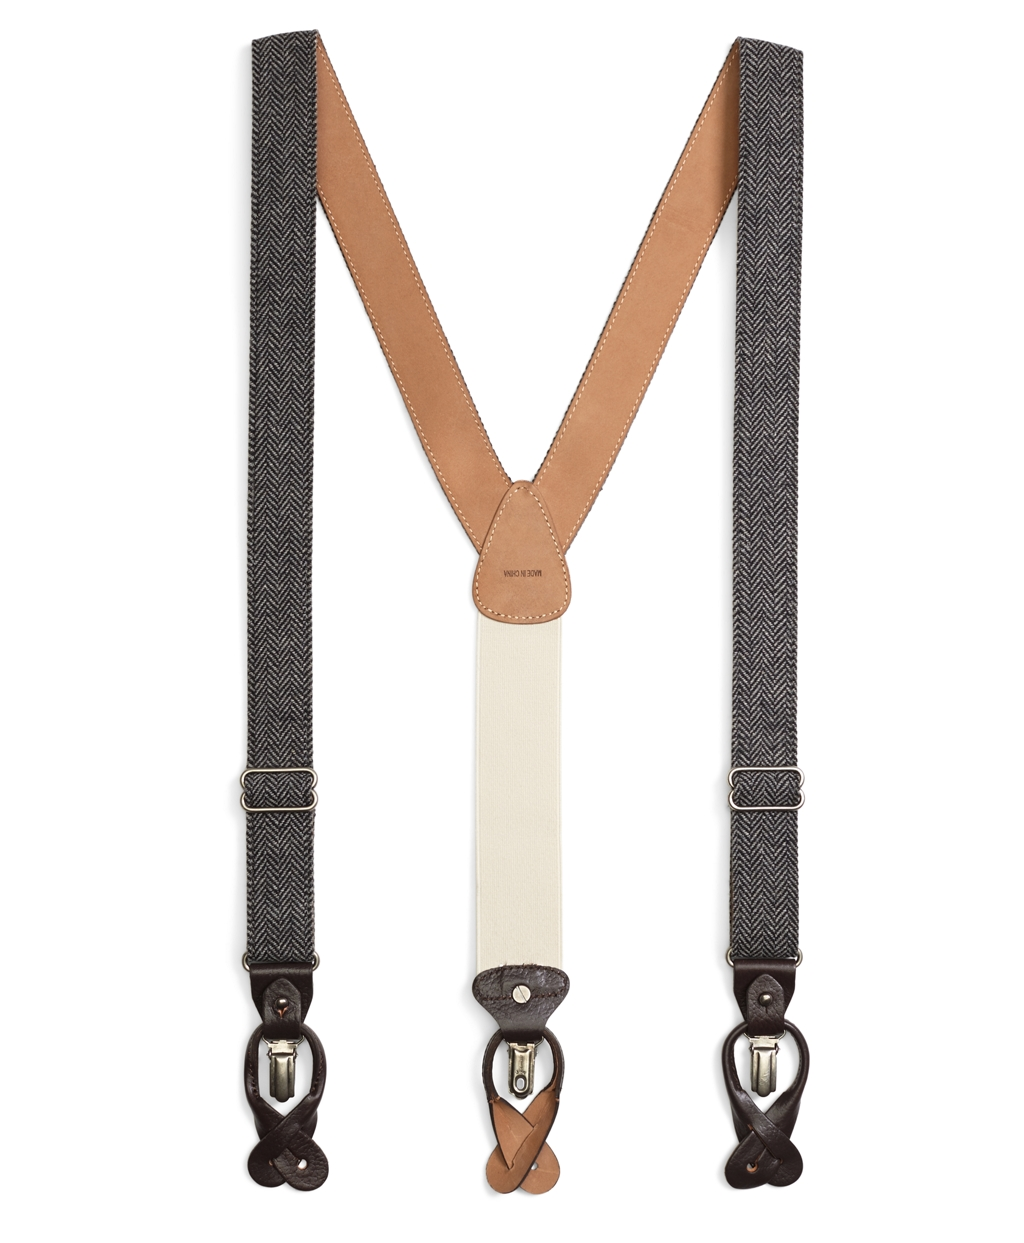 Men's Vintage Style Suspenders Tweed Suspenders Brooks Brothers Mens $118.00 AT vintagedancer.com